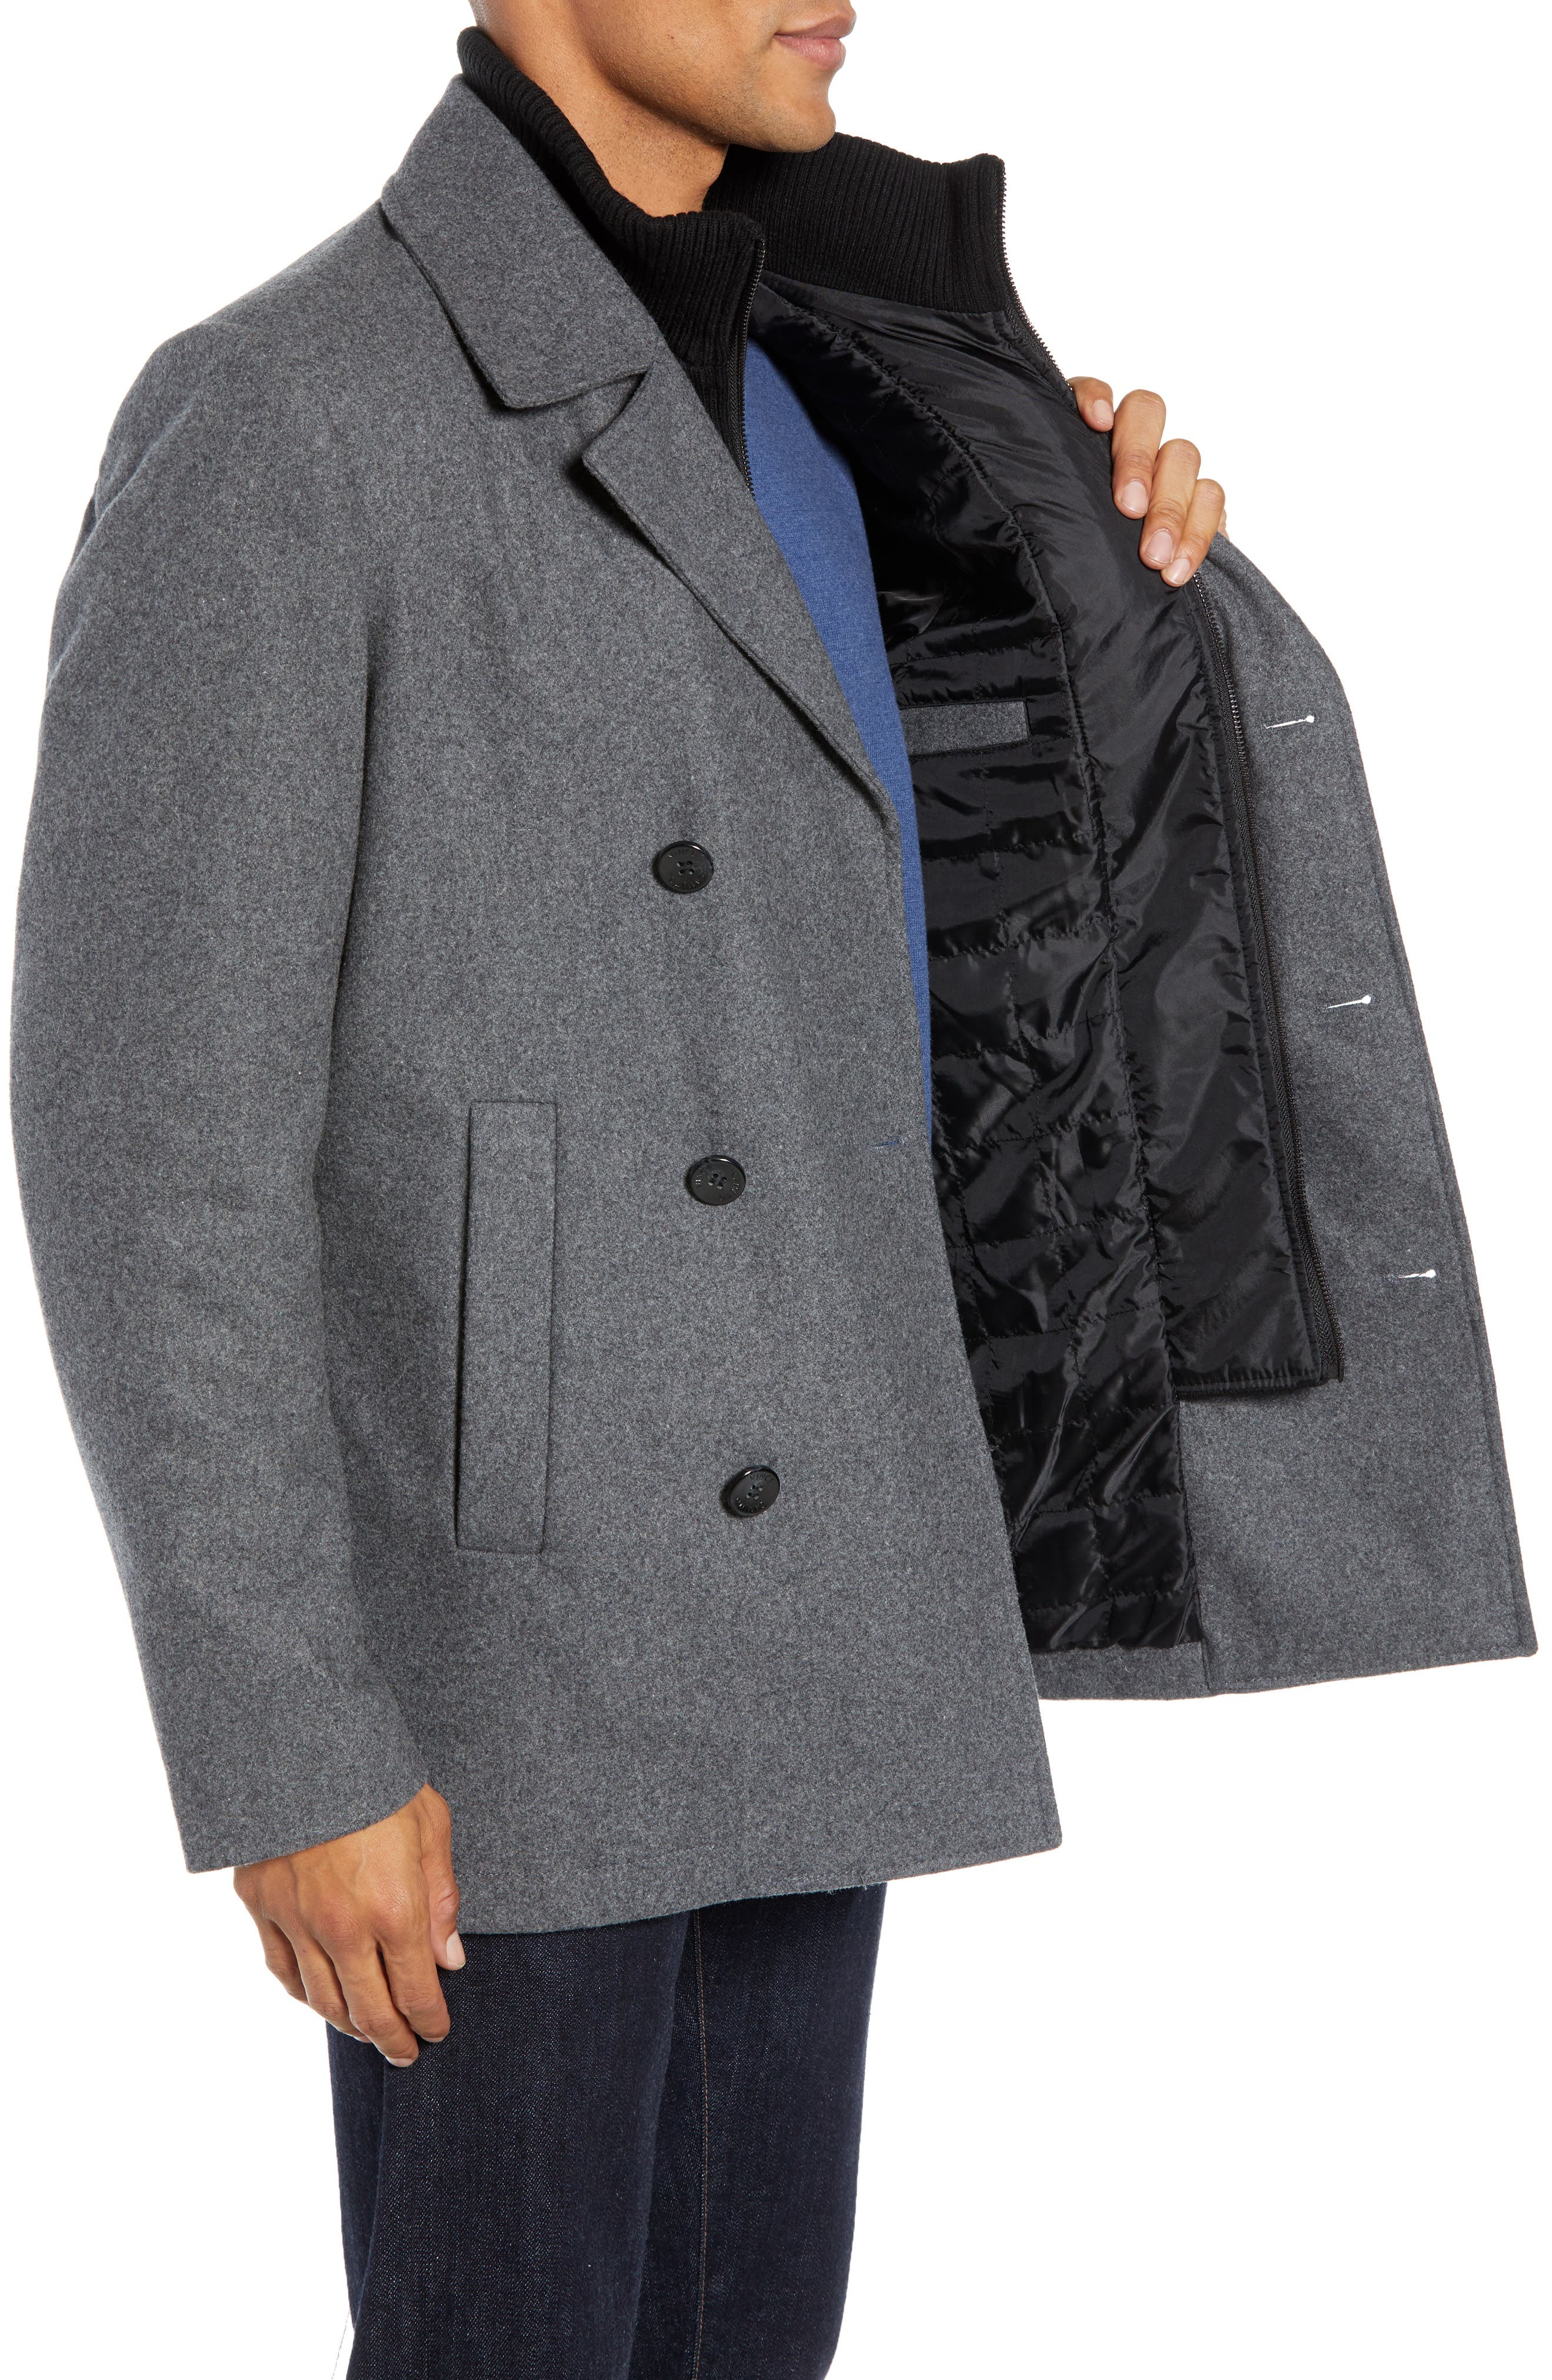 VINCE CAMUTO, Dock Peacoat, Alternate thumbnail 4, color, HEATHER GREY